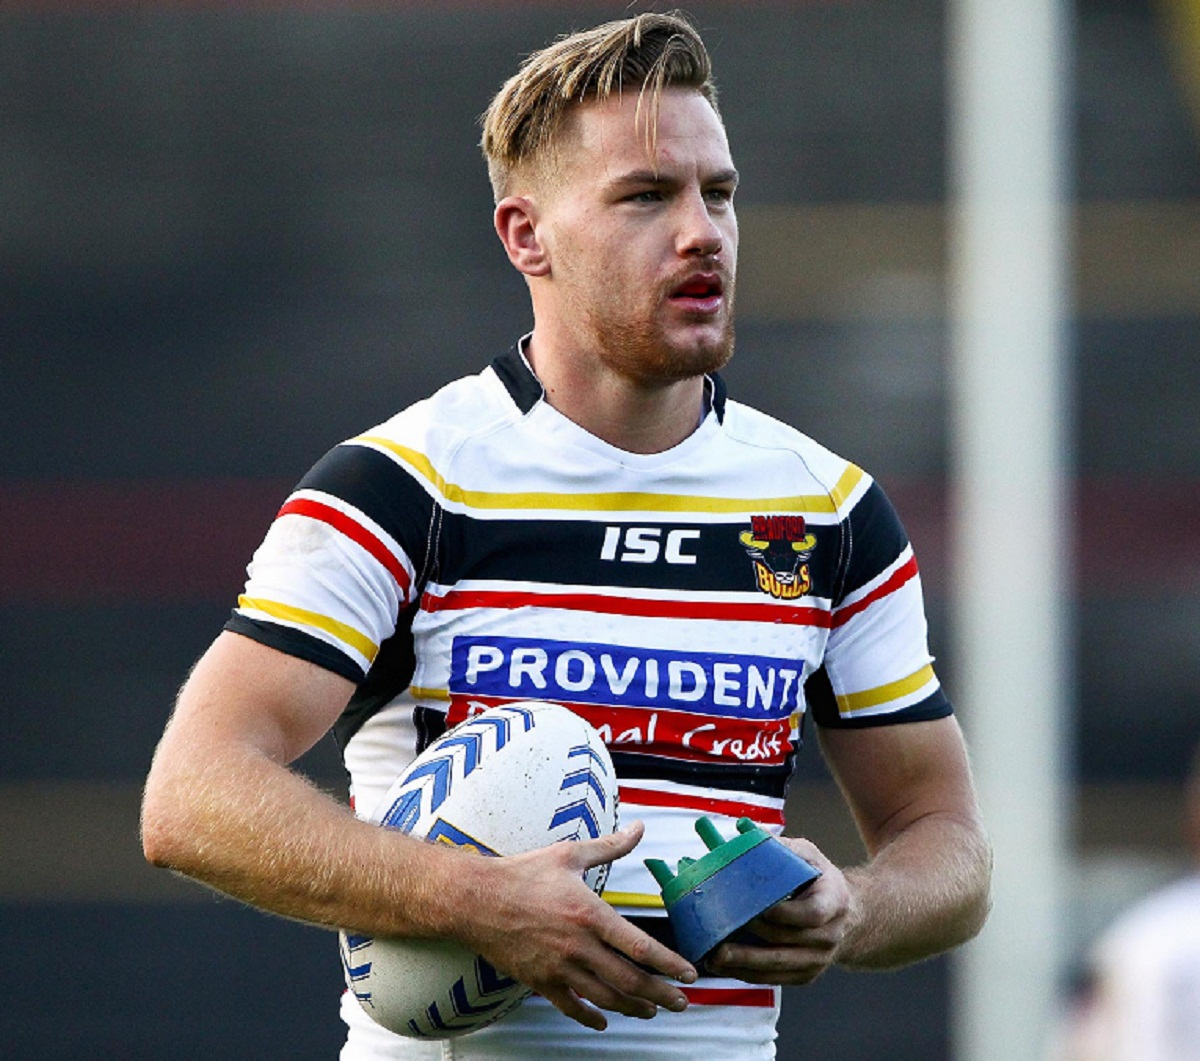 Bulls winger Jamie Foster has hit back at Mark Moore's statement and says he would love to make the critics eat their words